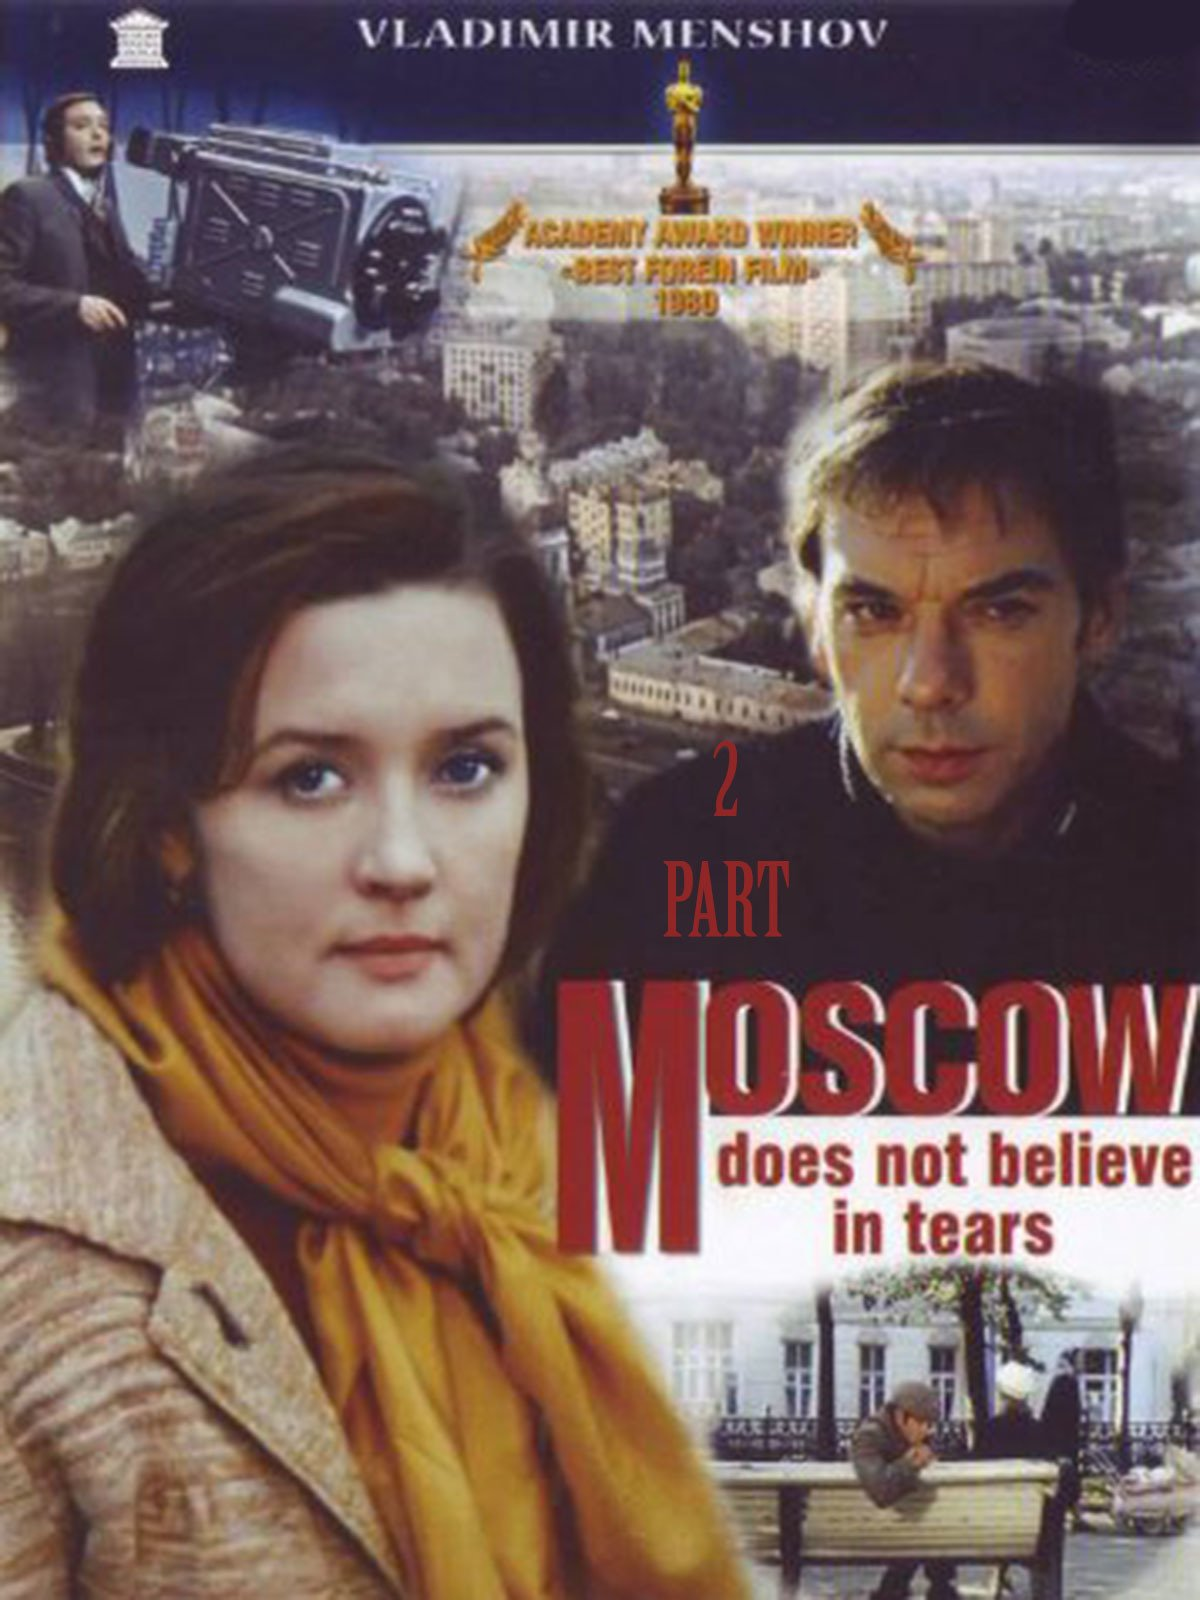 Why Vladimir Menshov removed Moscow tears do not believe